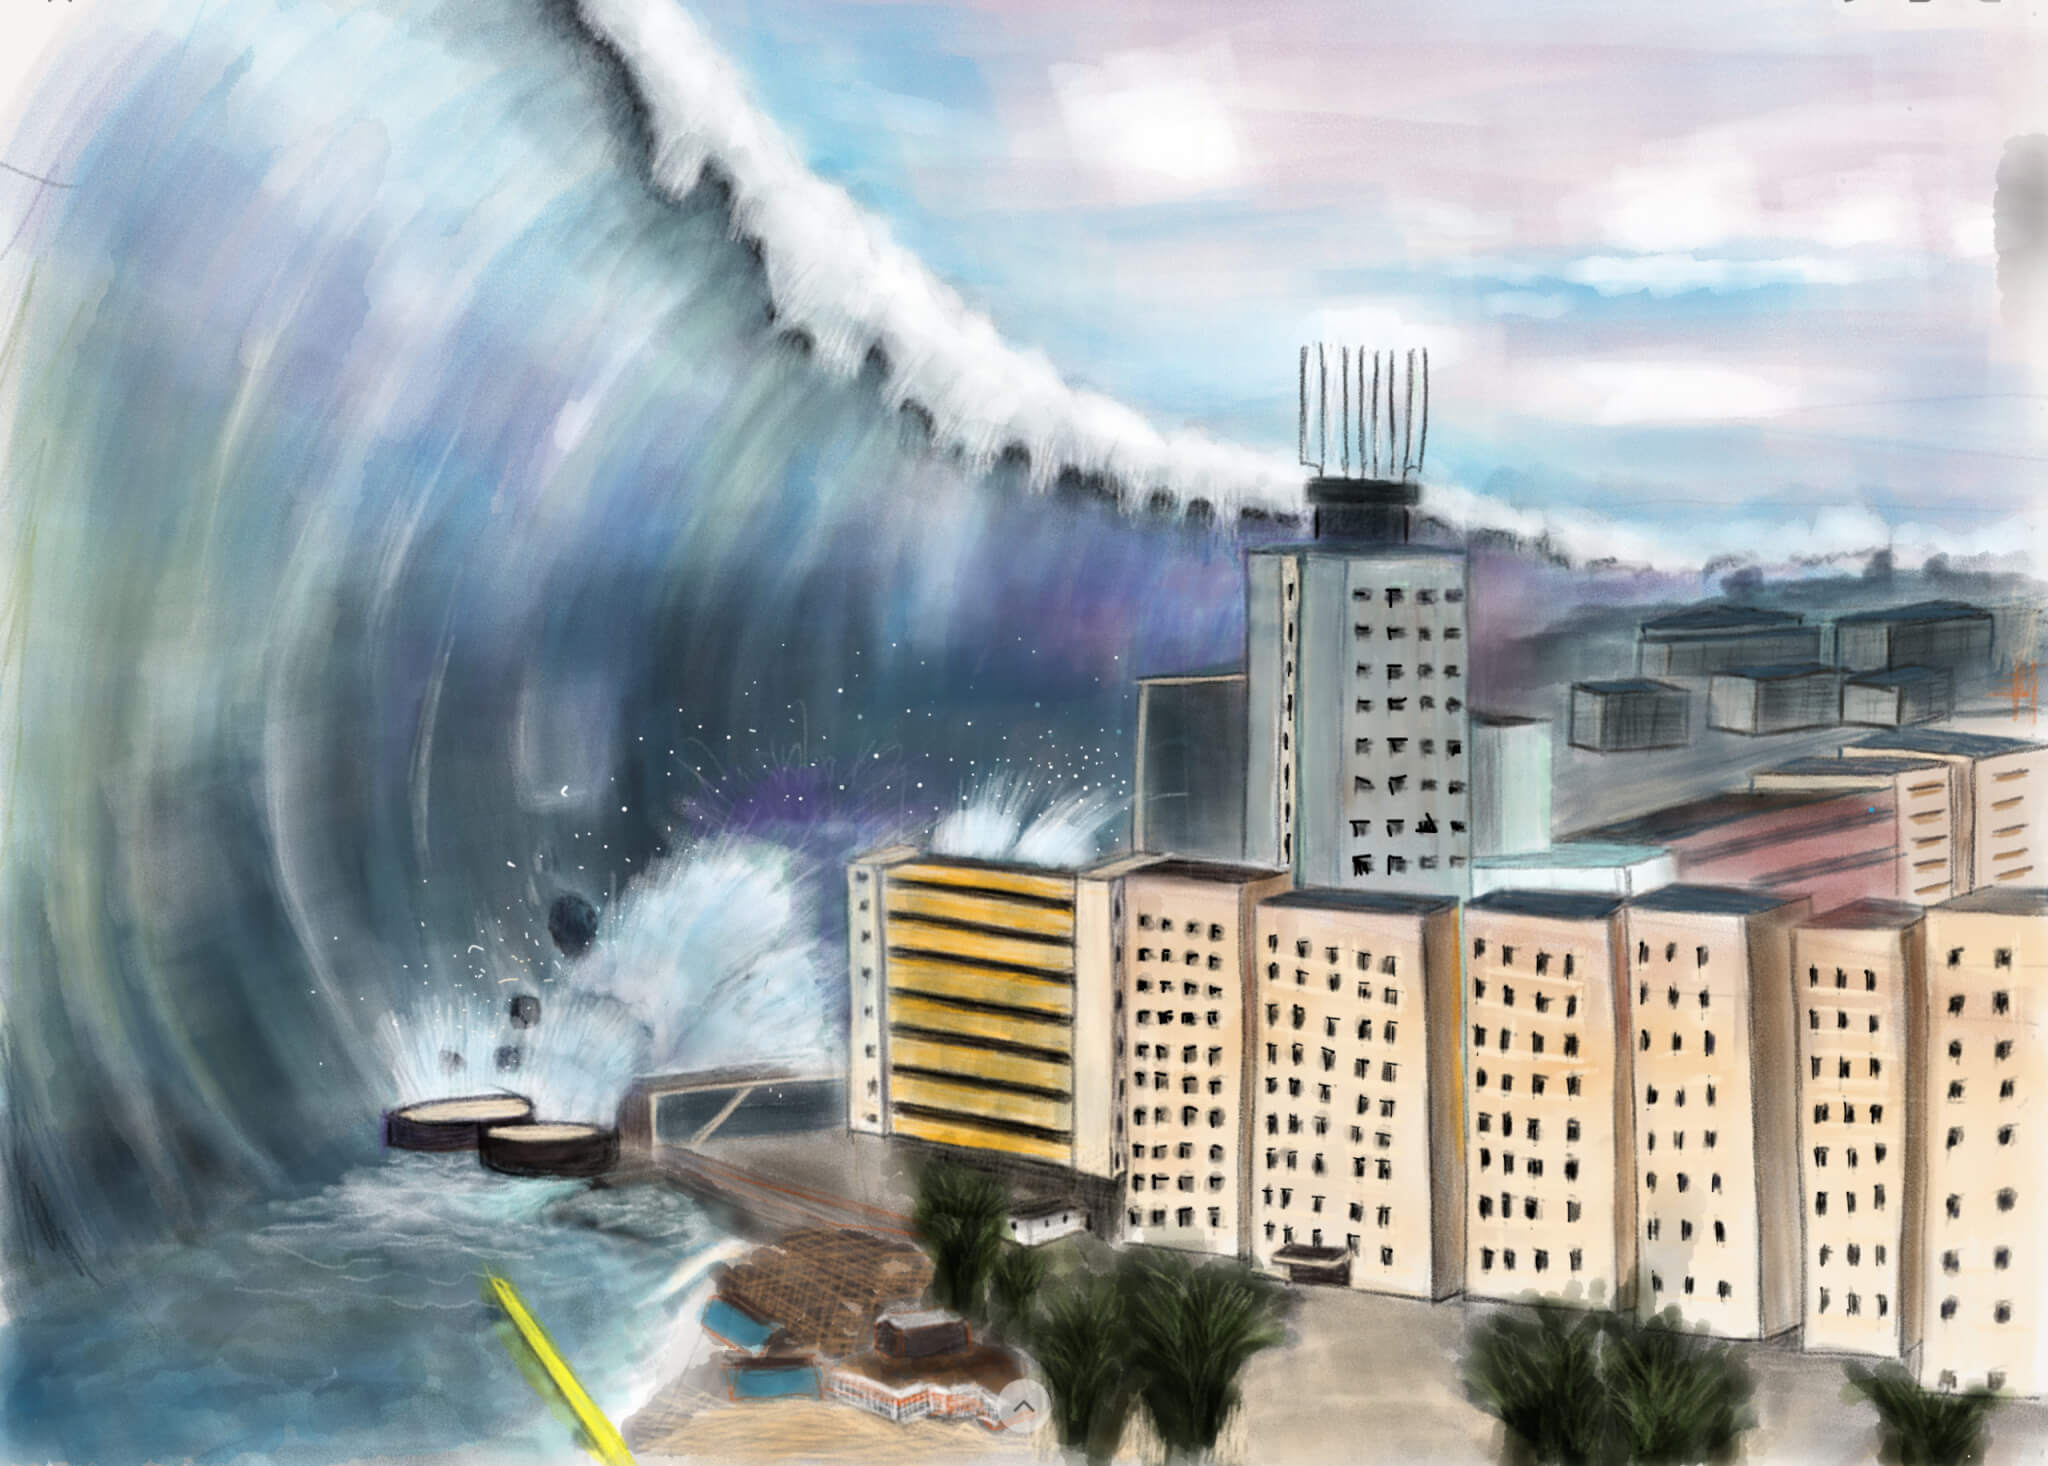 AIRBORNE DRONES REPORTS ON: IN-DEPTH STUDY REVEALS HOW DRONES CAN HELP IN ALL PHASES OF A DISASTER